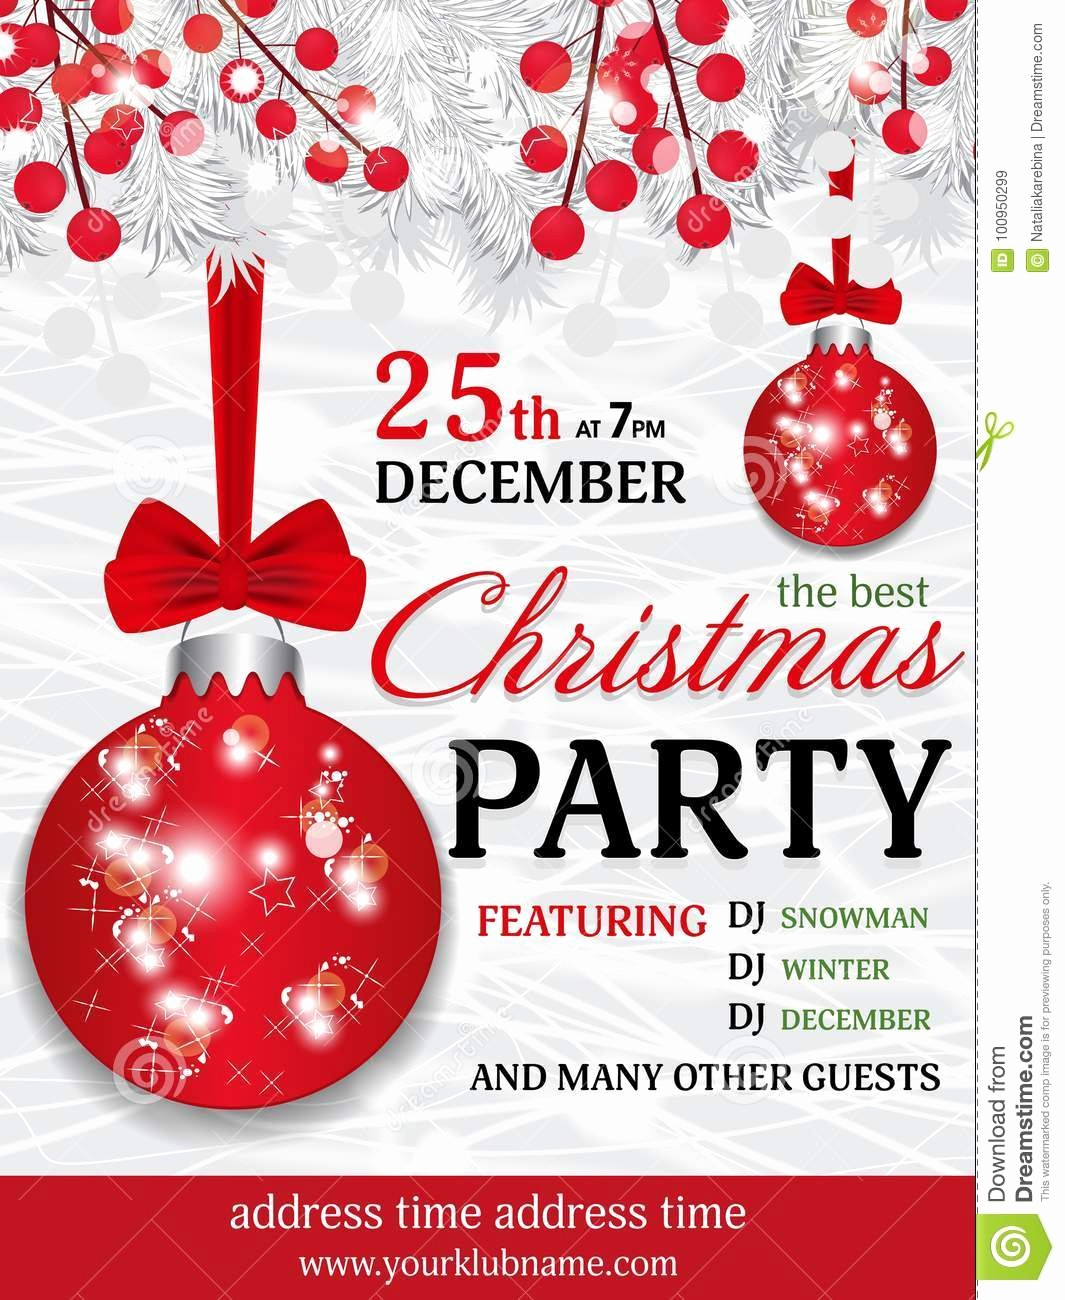 Annual Holiday Party Invitation Template Awesome Template Cartoons Illustrations & Vector Stock